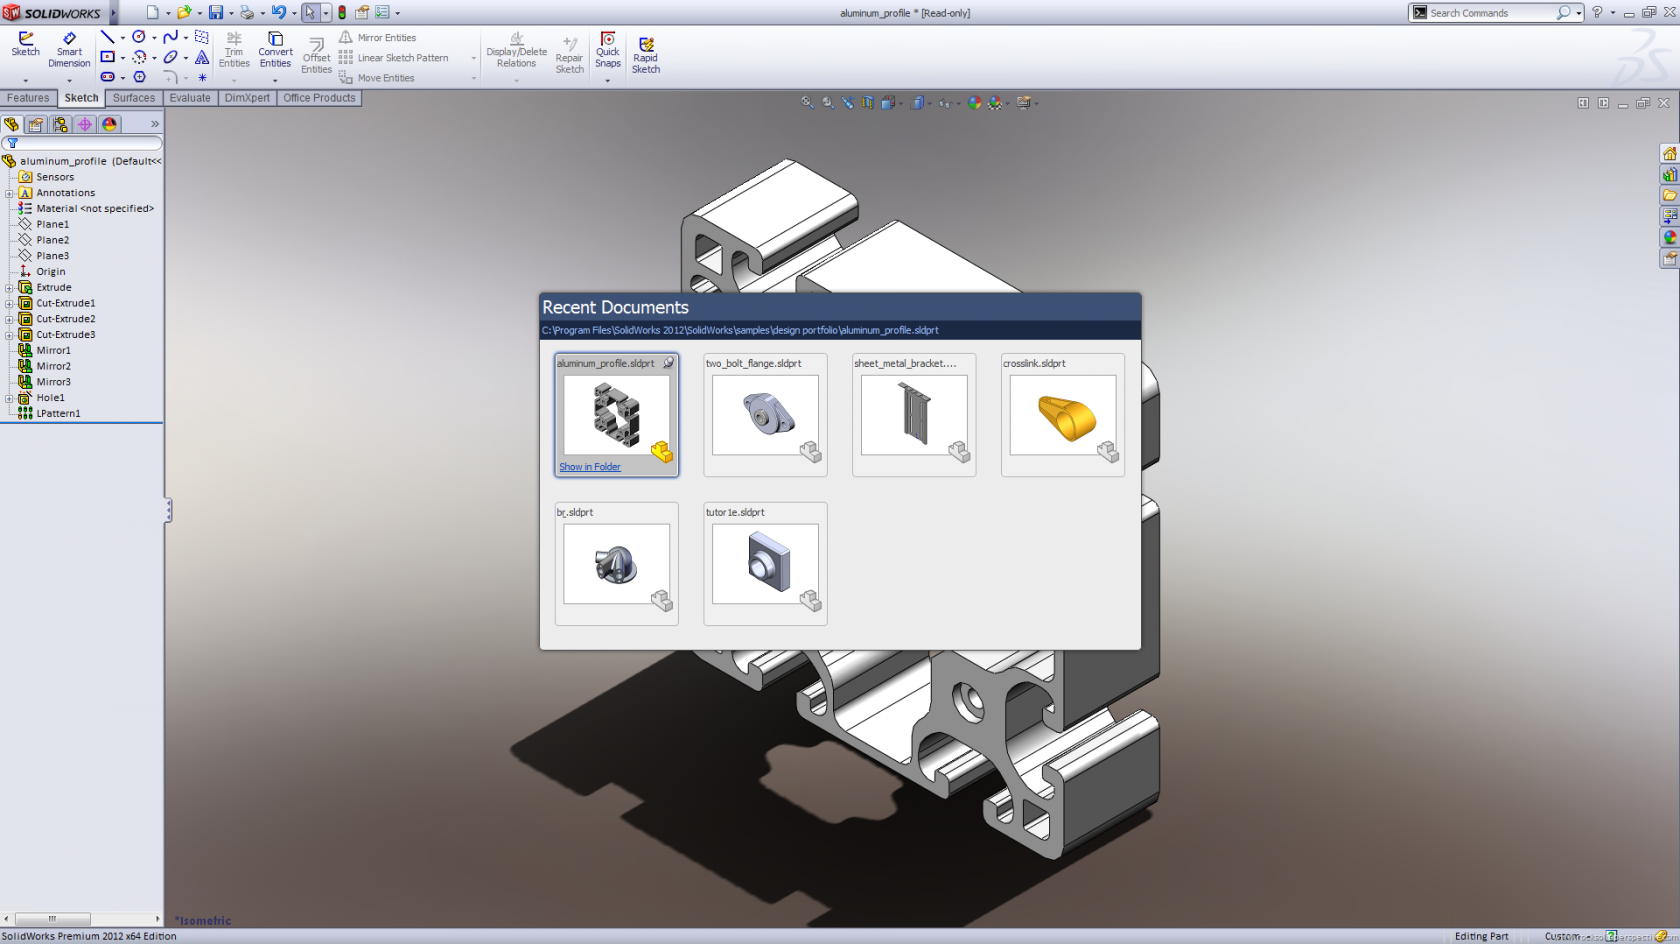 How to Purchase Solidworks 2012?